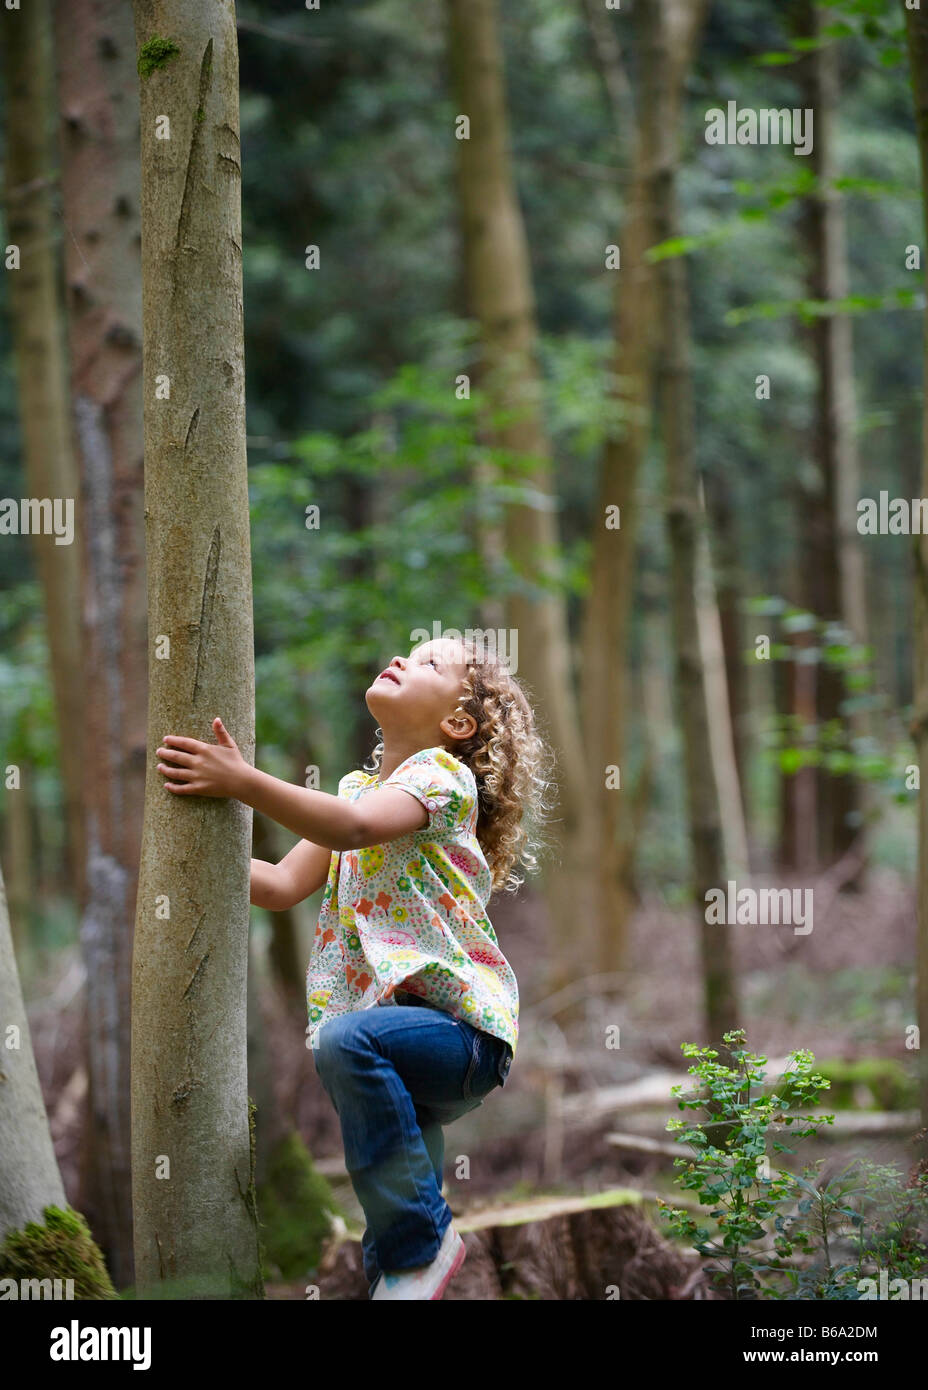 Young girl starting to climb tall tree - Stock Image